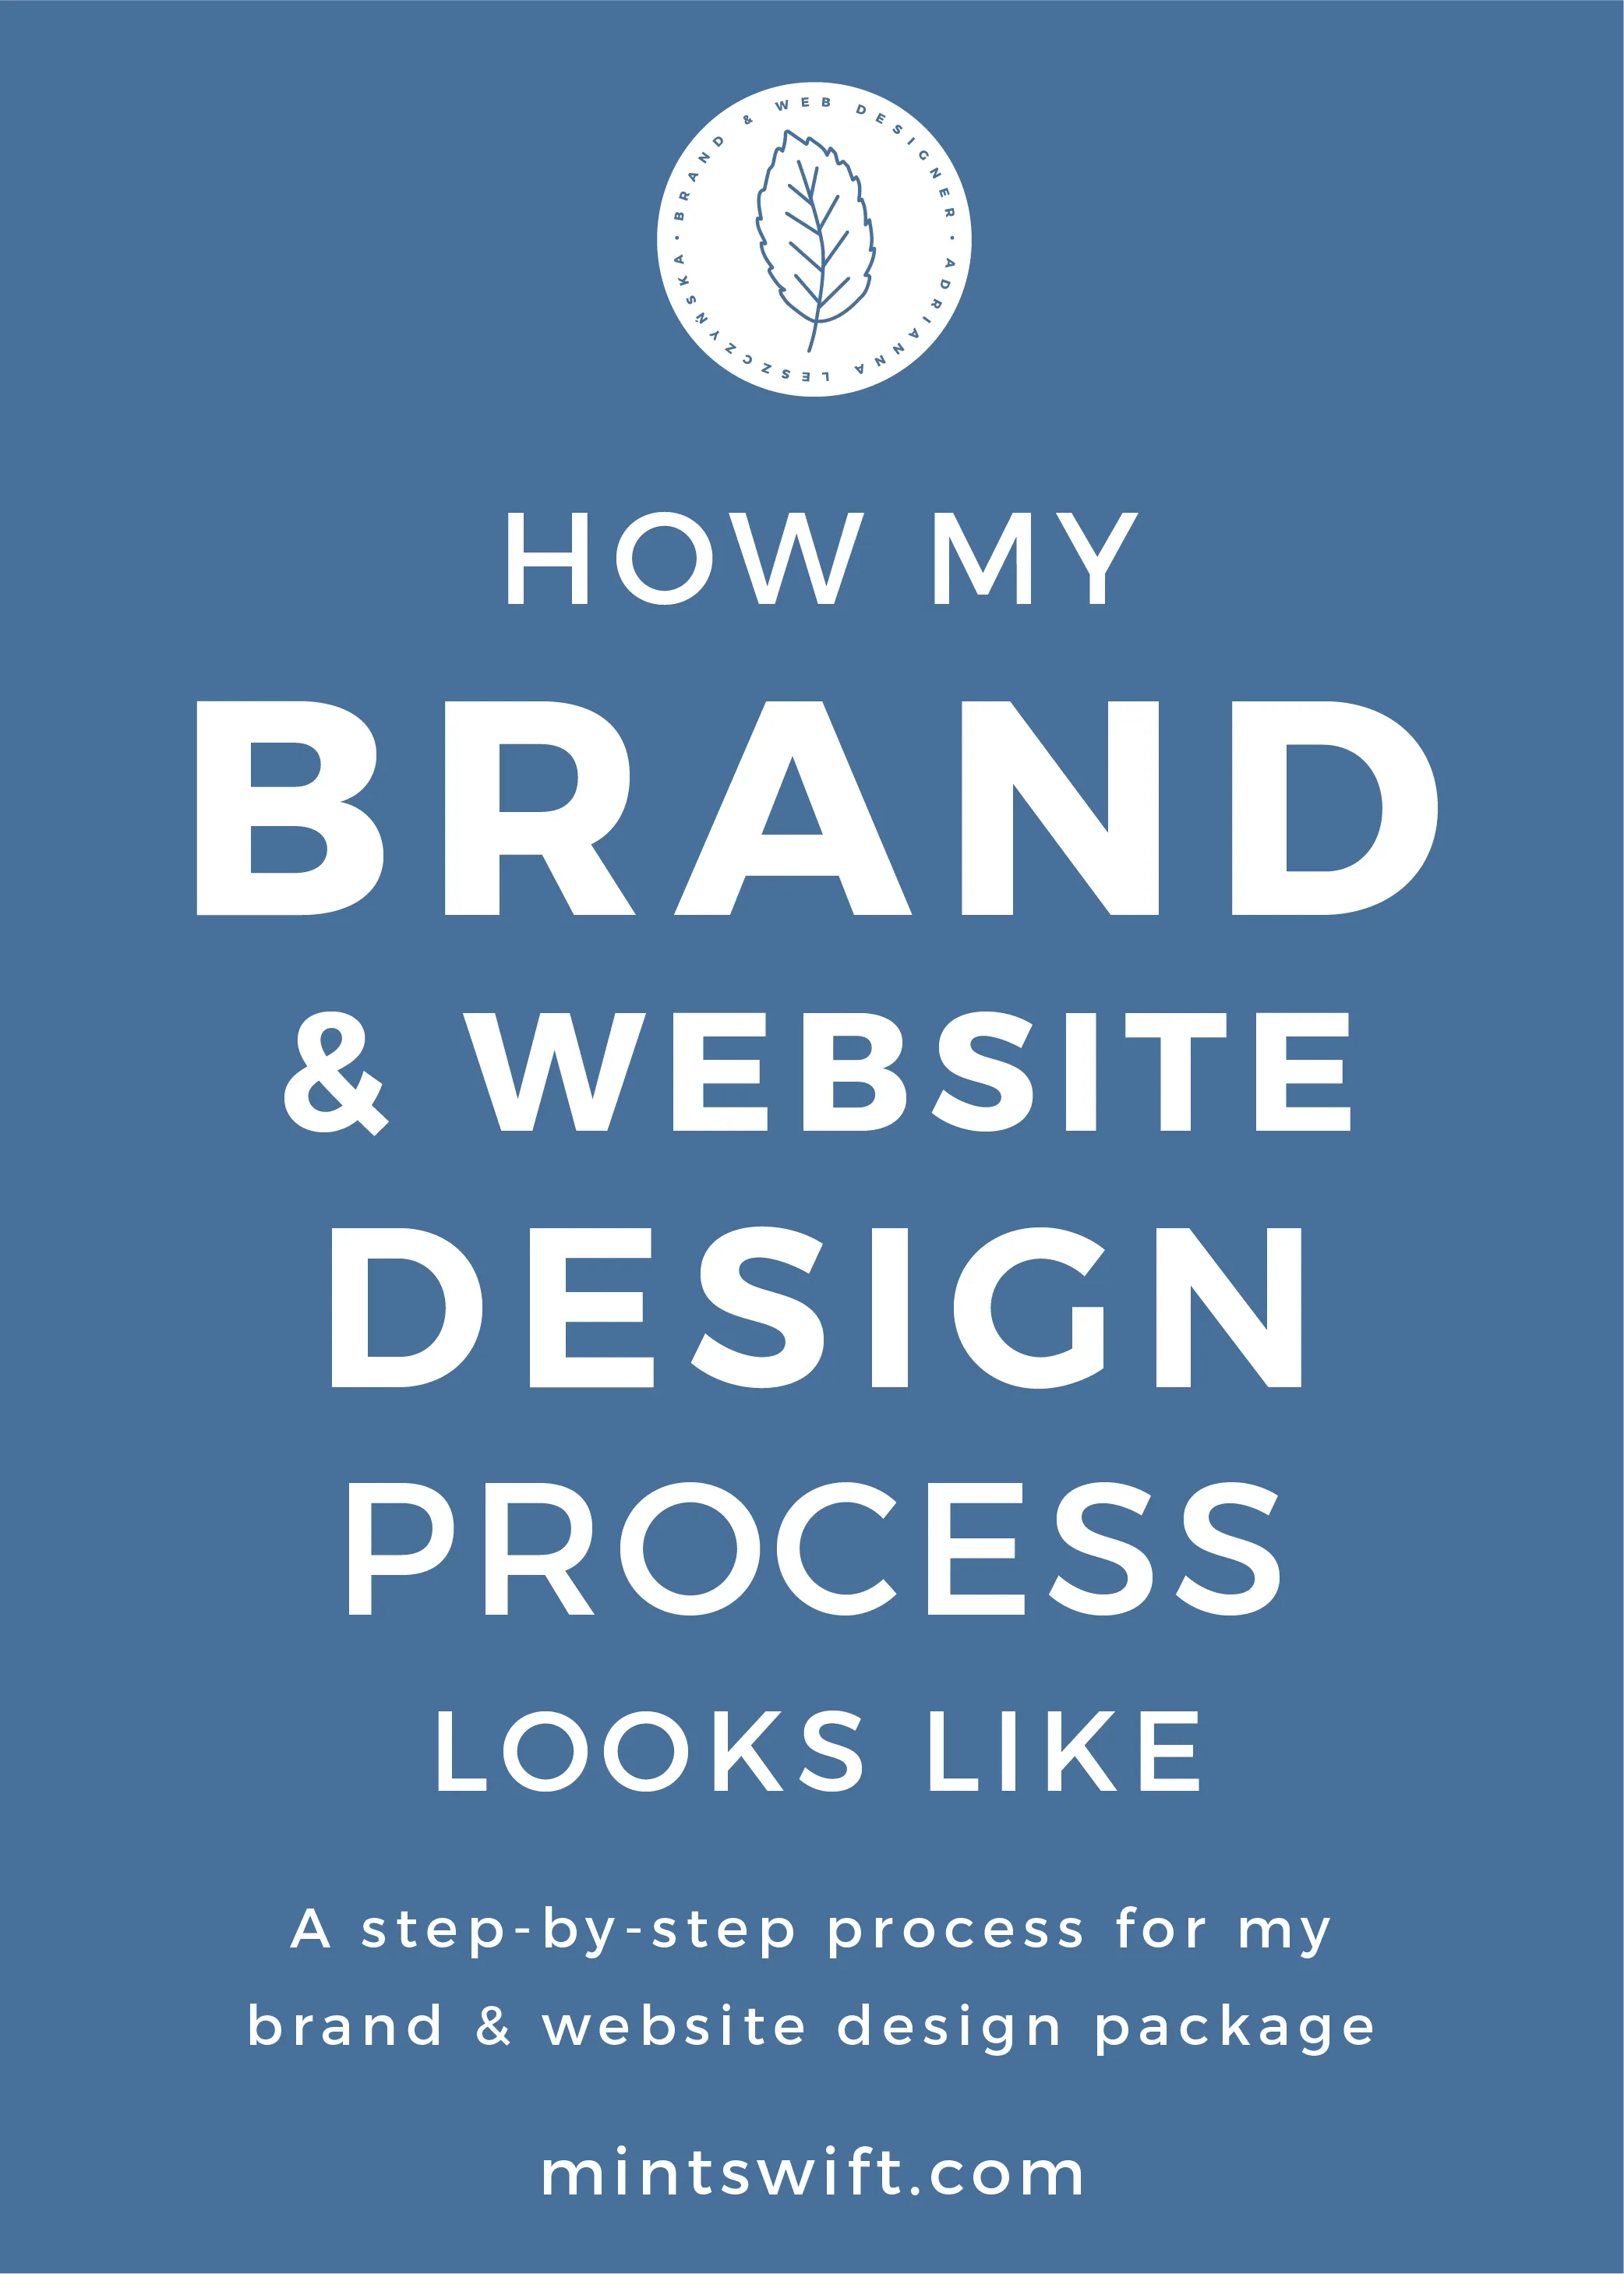 How My Brand & Website Design Process Looks Like. A Step-by-Step Process for My Brand & Website Design Package - MintSwift